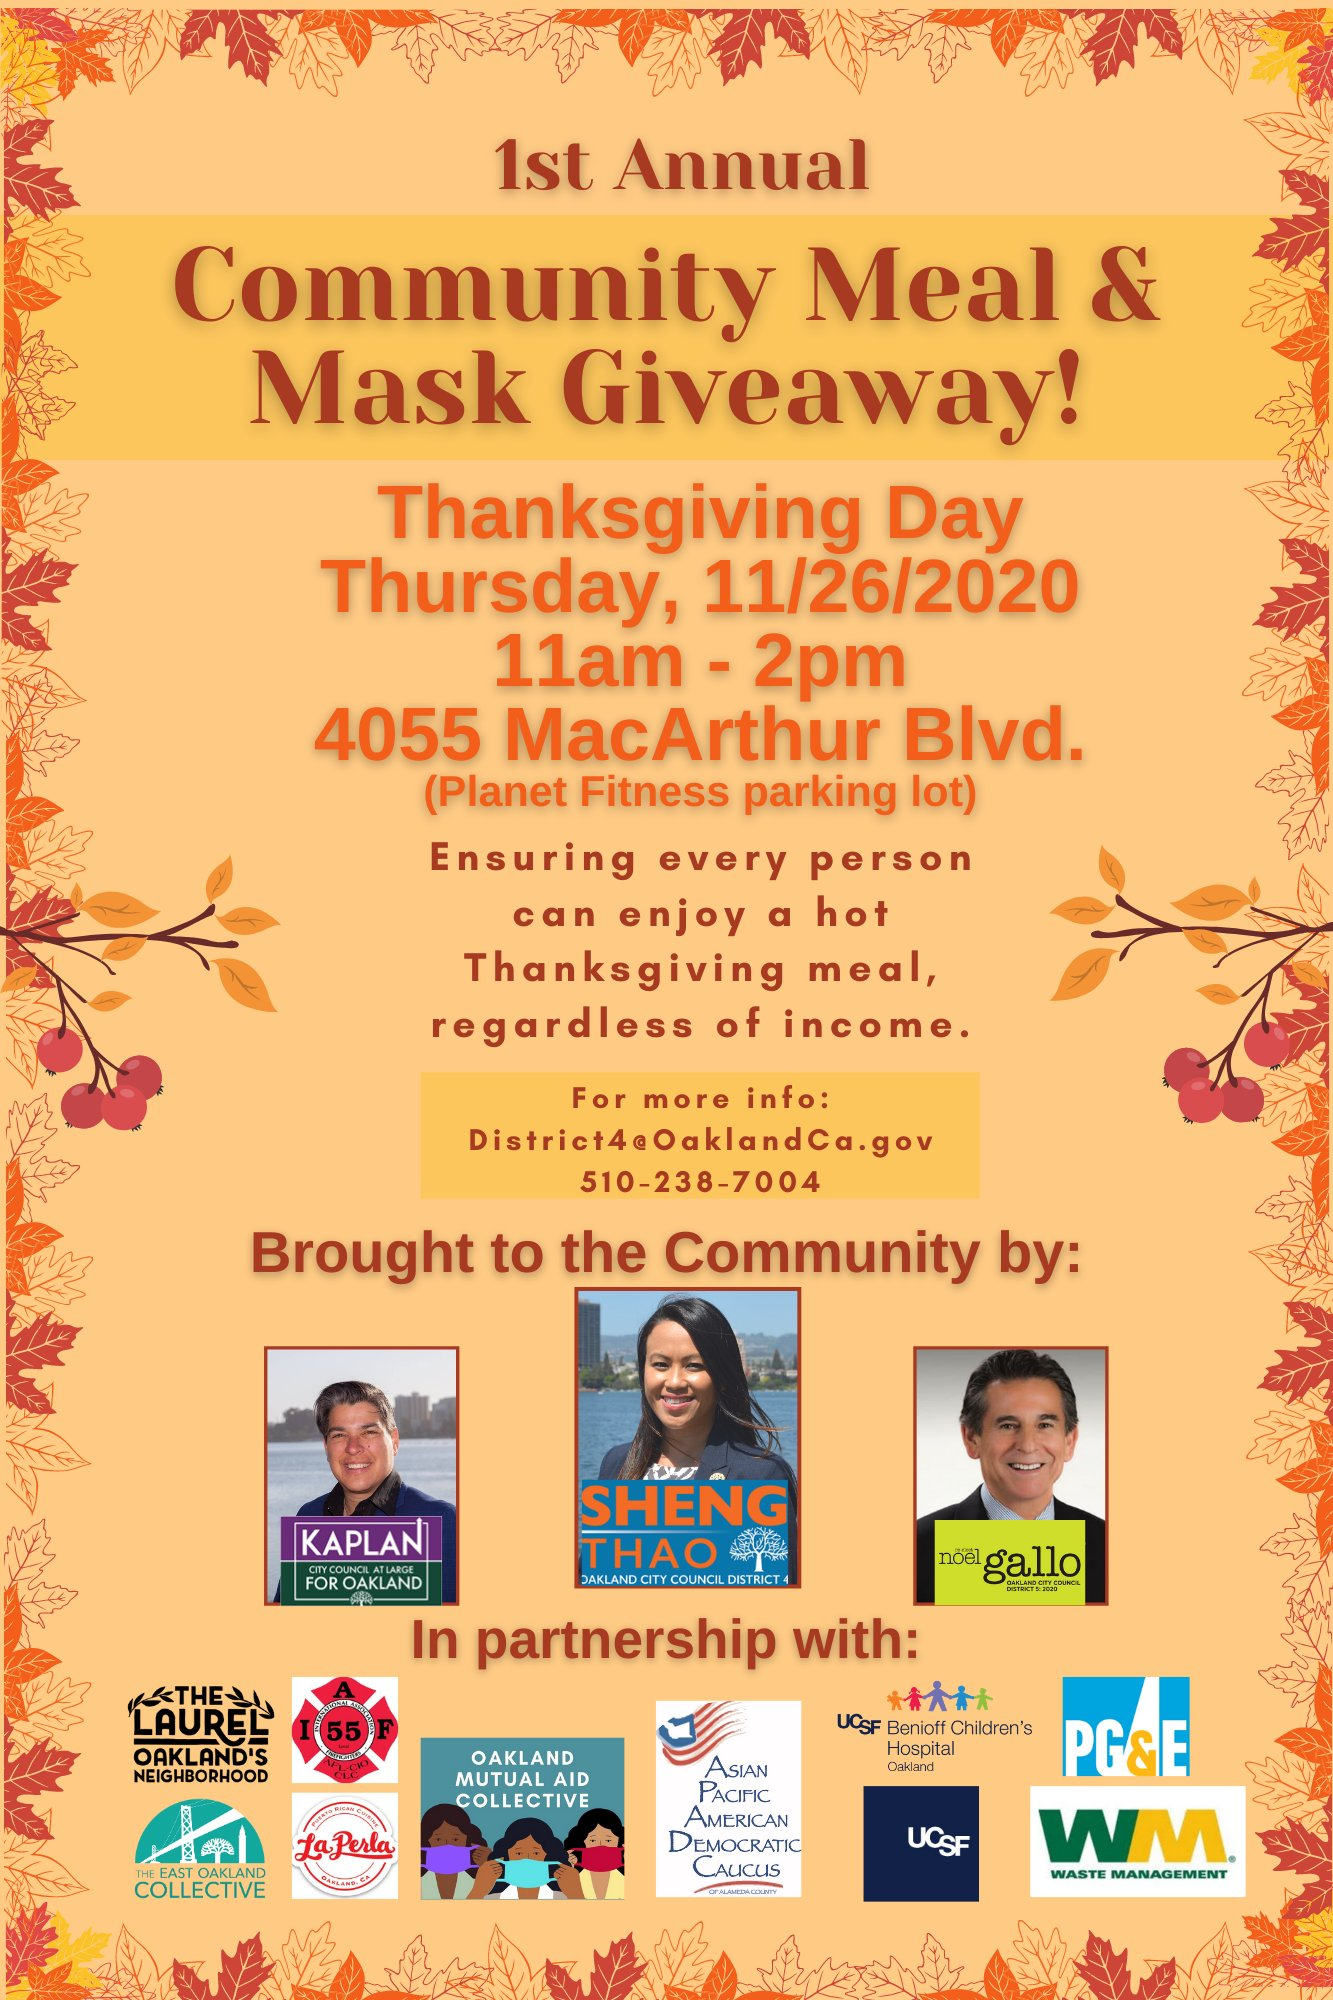 Community Meal and Mask Giveaway